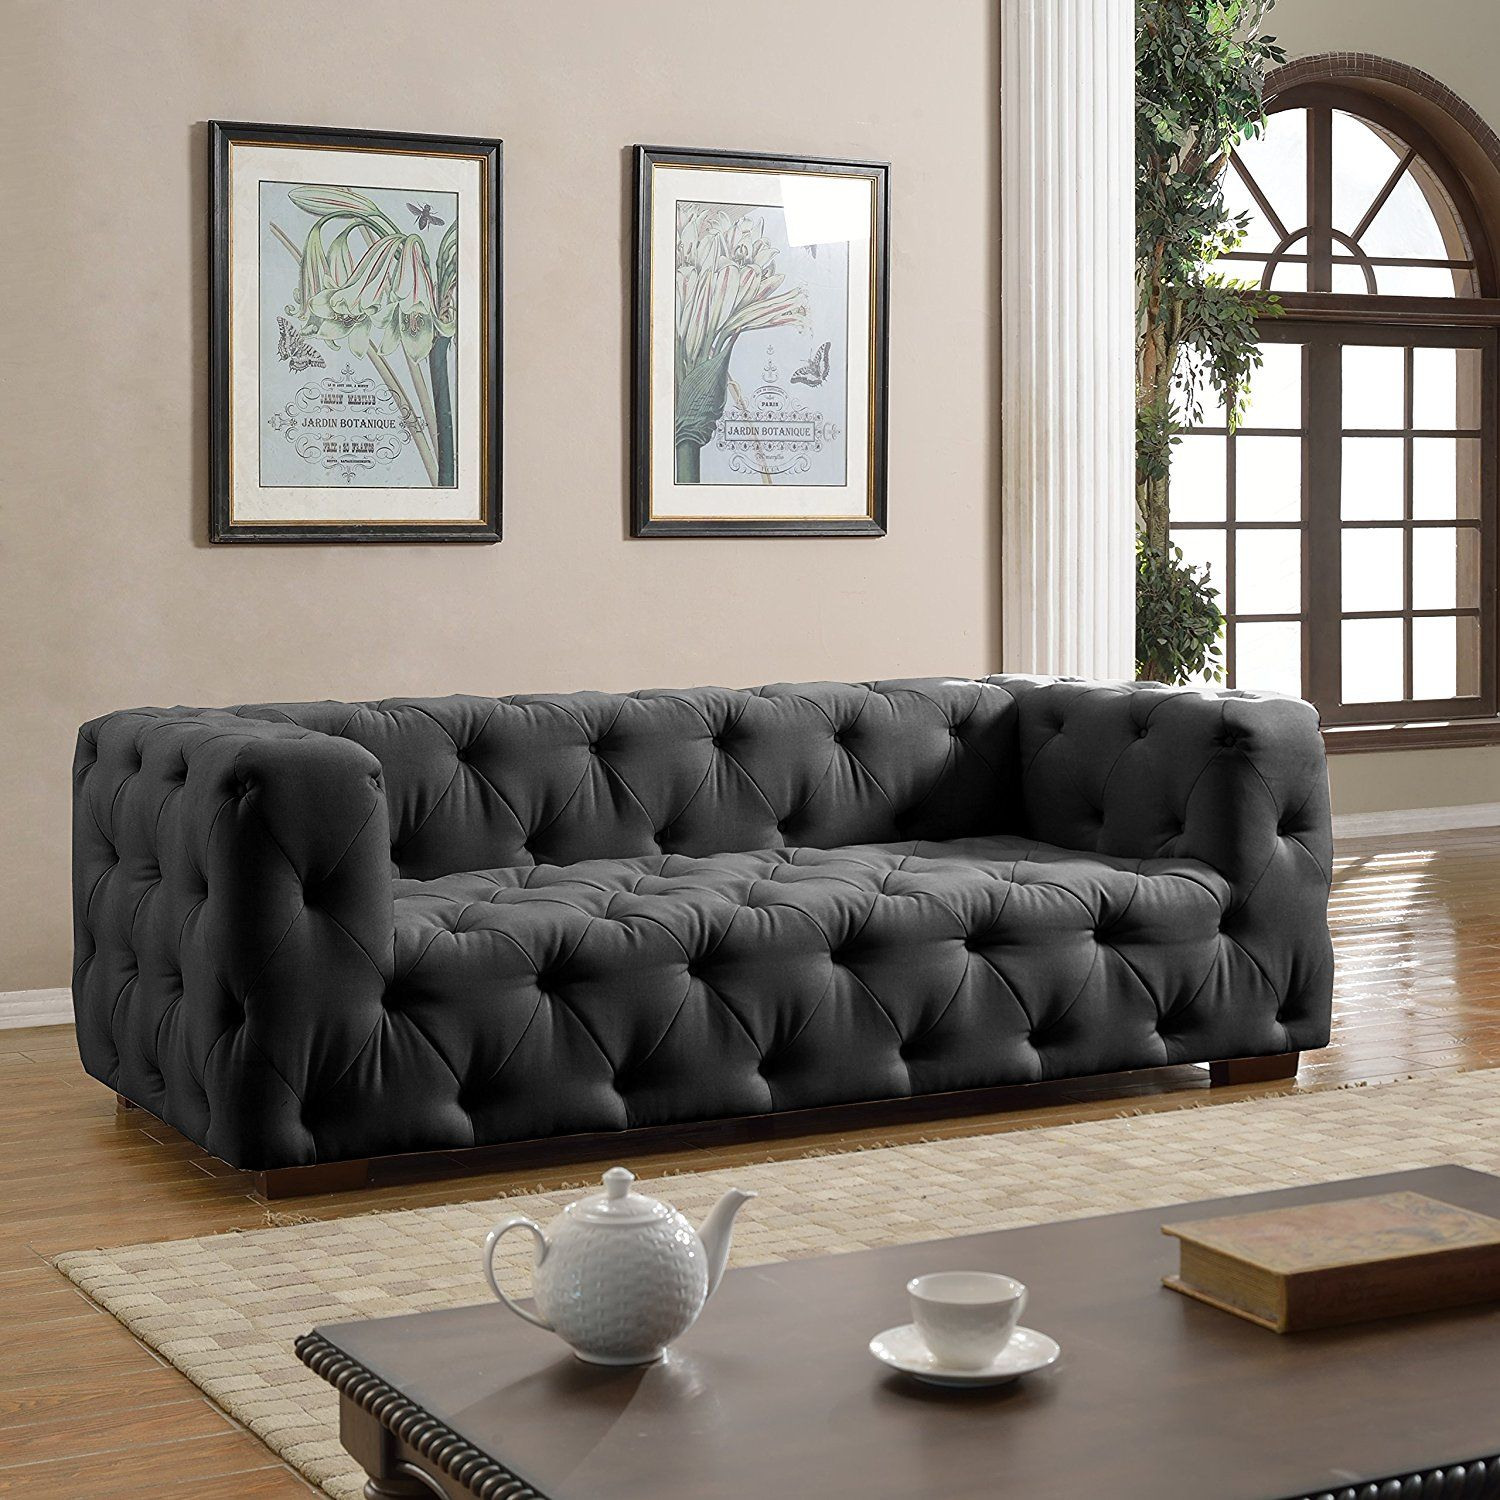 Amazon Com Large Tufted Linen Fabric Chesterfield Sofa Classic Living Room Couch Dark Grey Ki Sofa Upholstery Classic Living Room Fabric Chesterfield Sofa